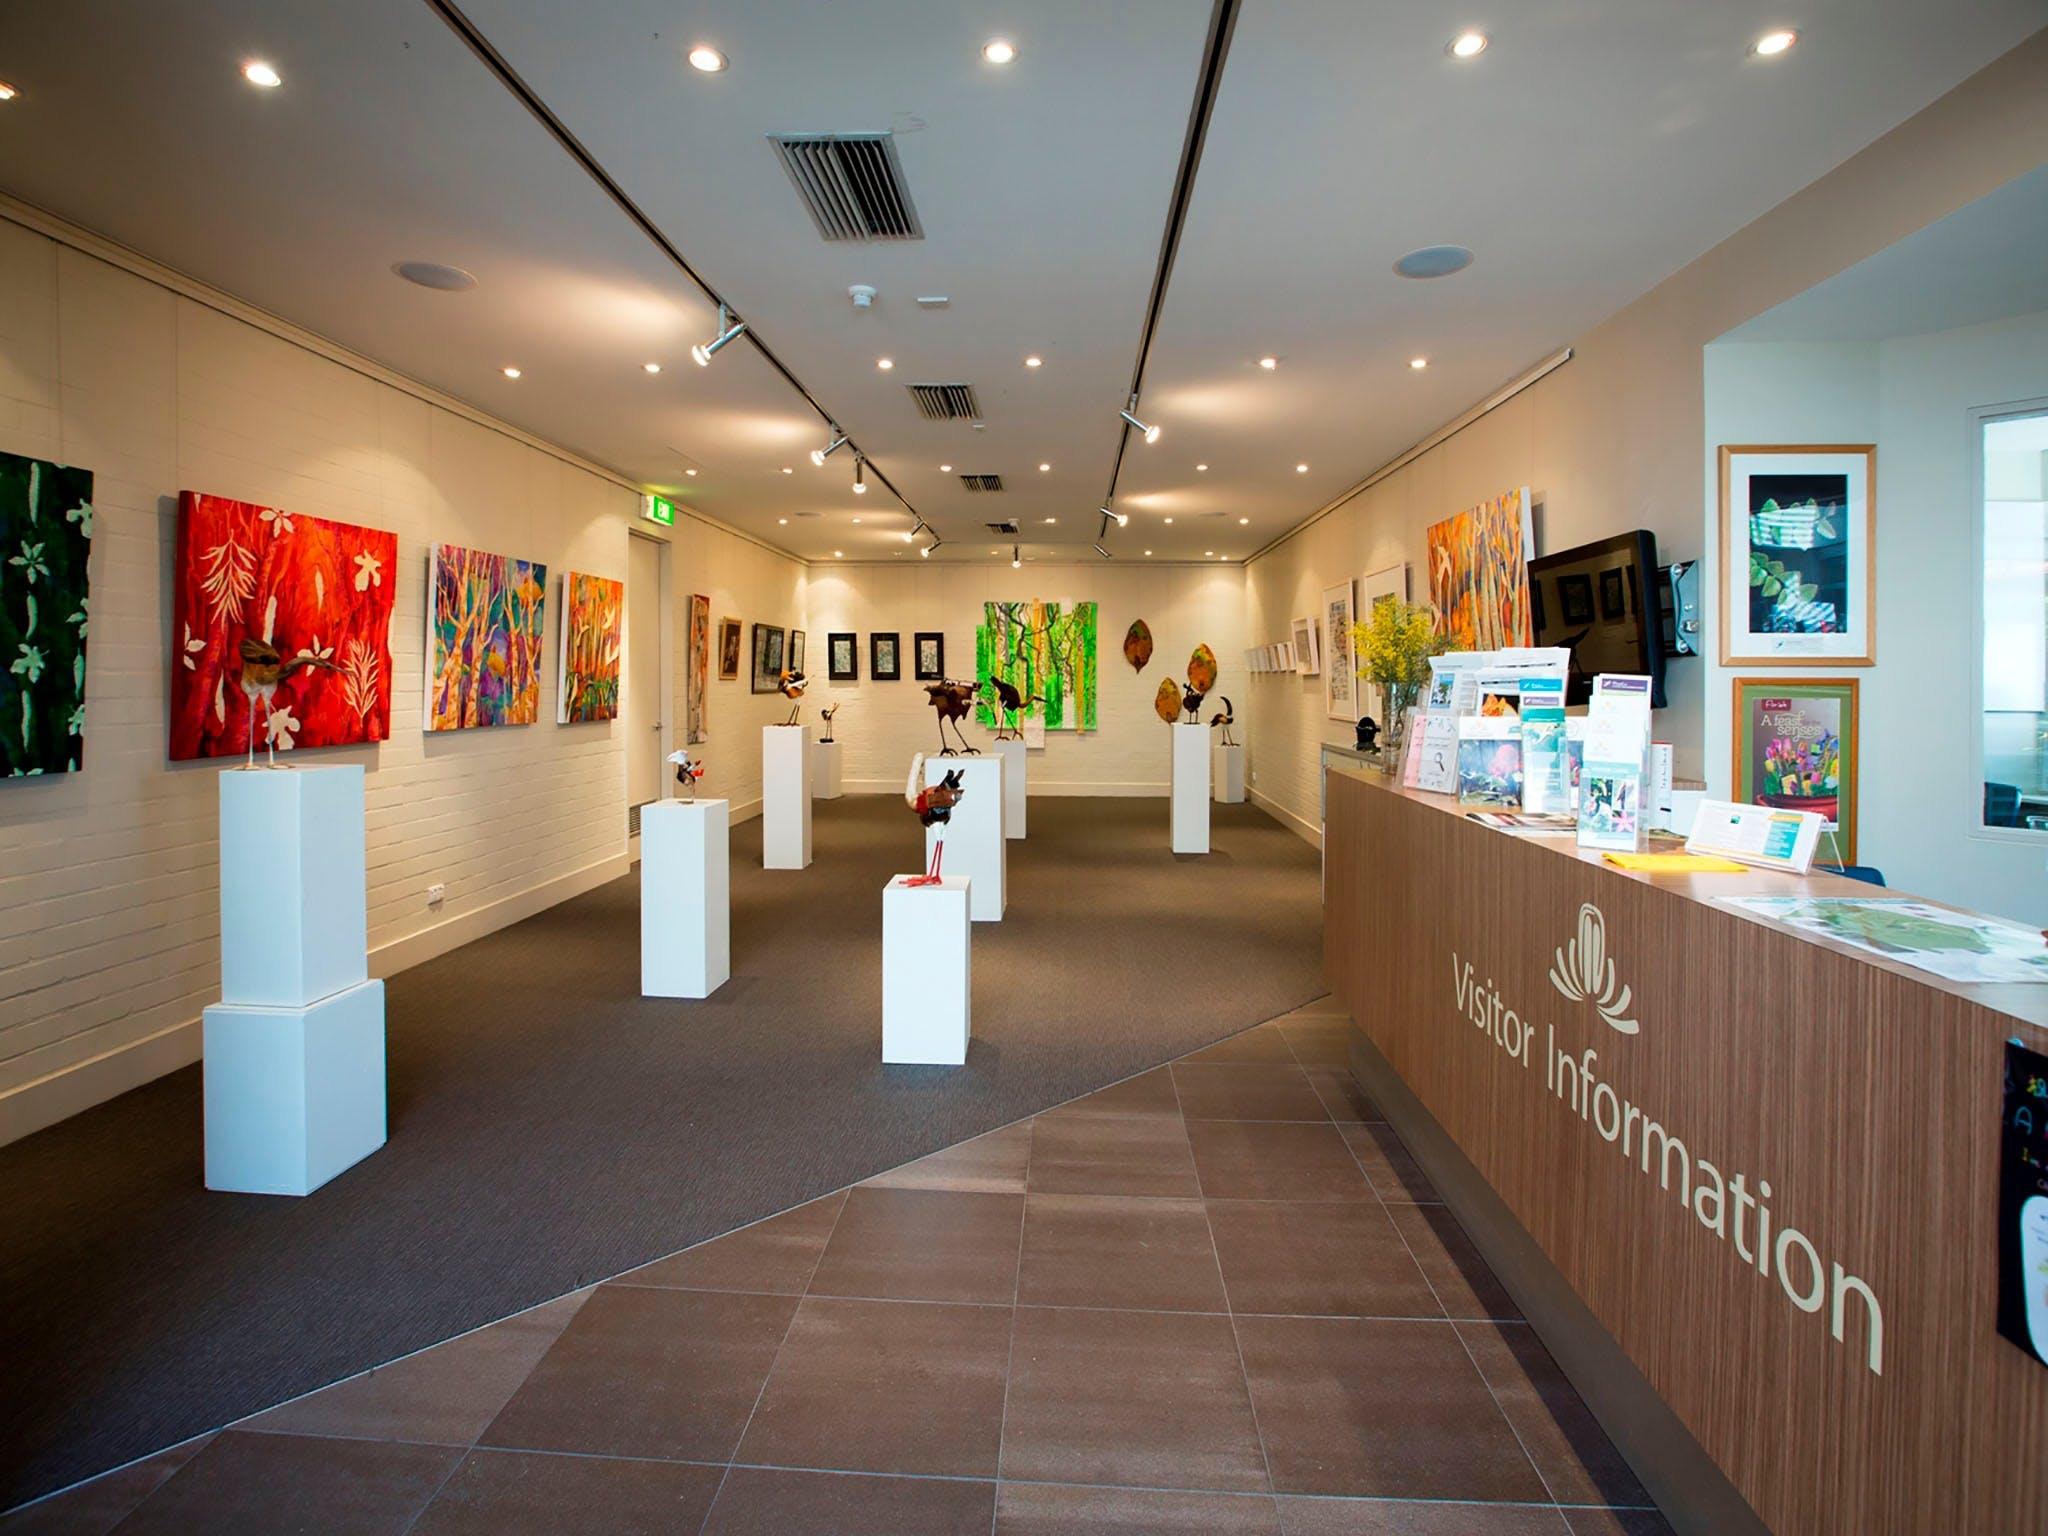 Australian National Botanic Gardens Visitor Centre Gallery - Accommodation Adelaide